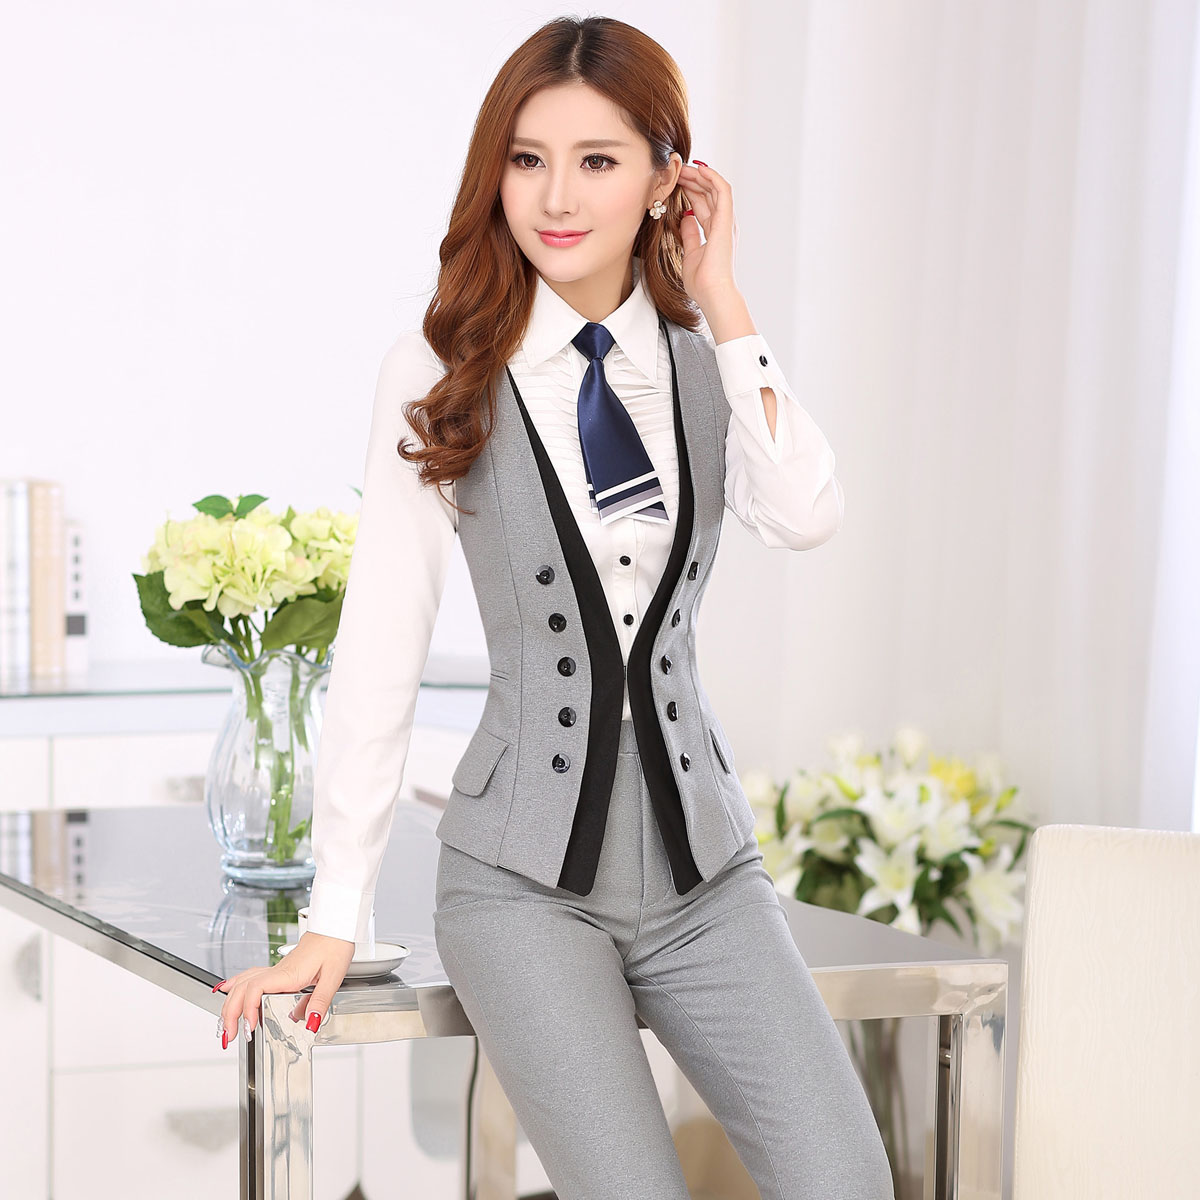 Fantastic Brown Womens Suit Jacket Dress Yy